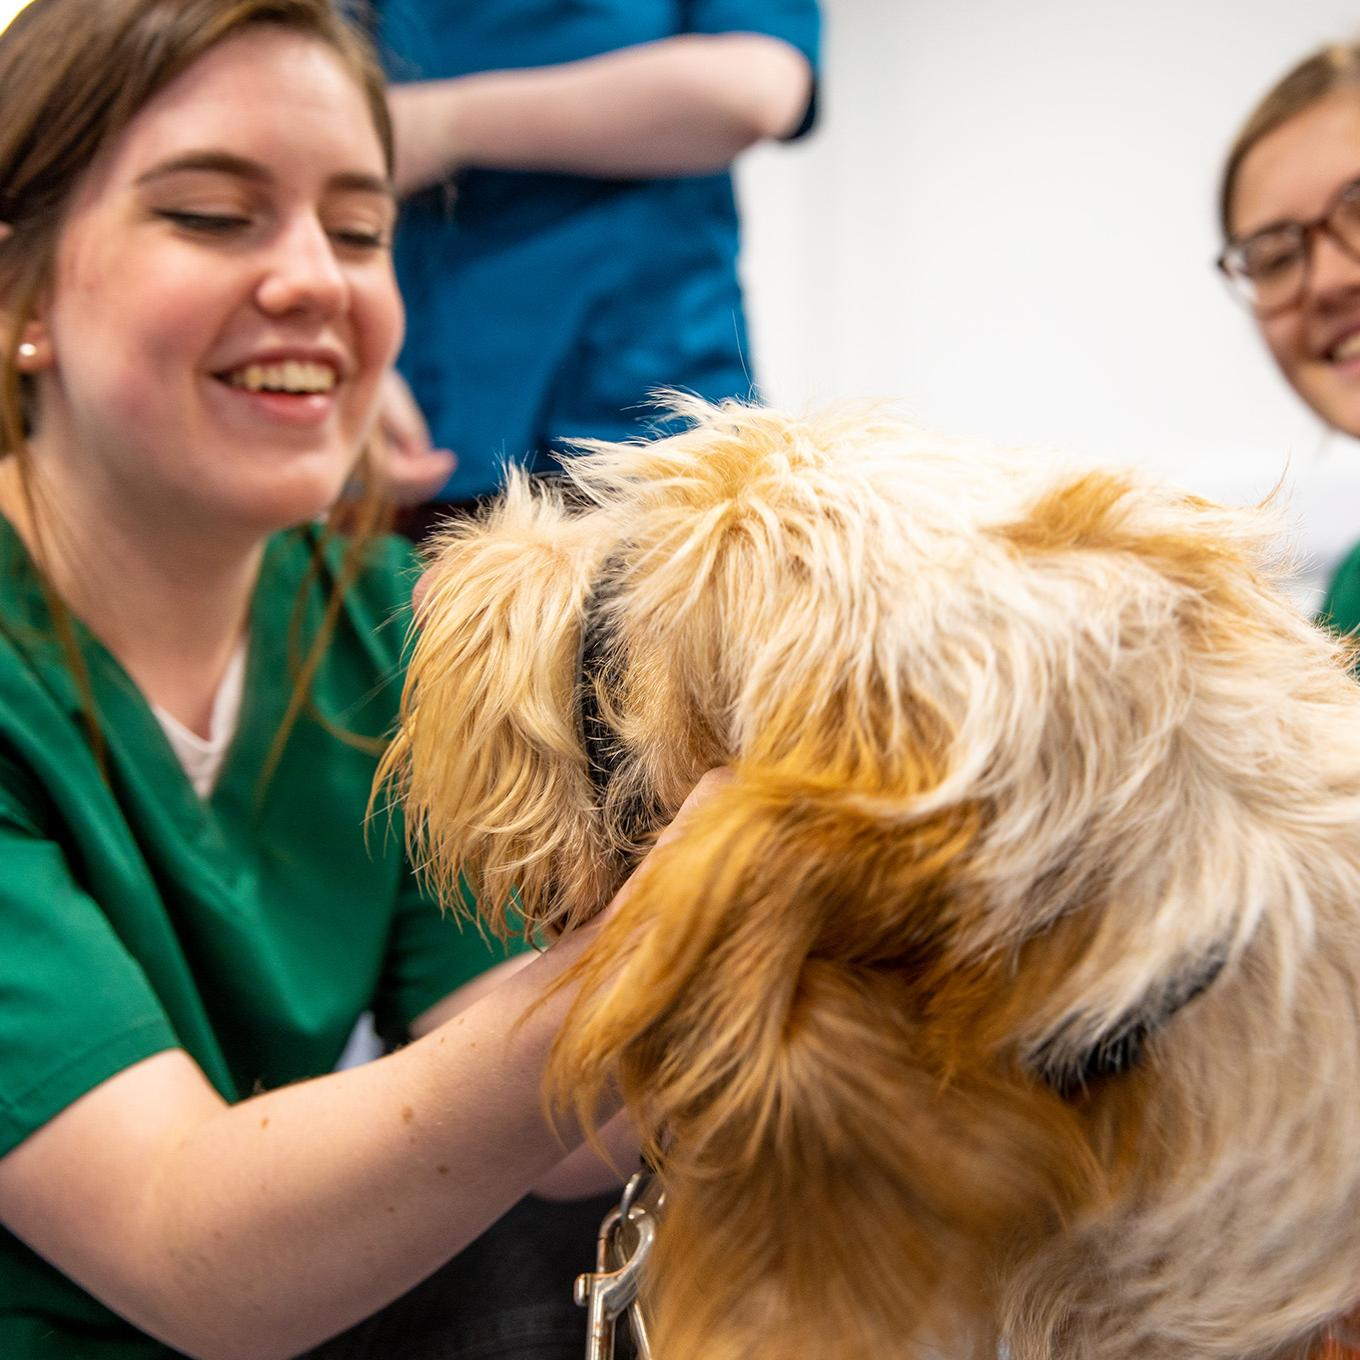 A veterinary nursing student is smiling and petting a brown dog